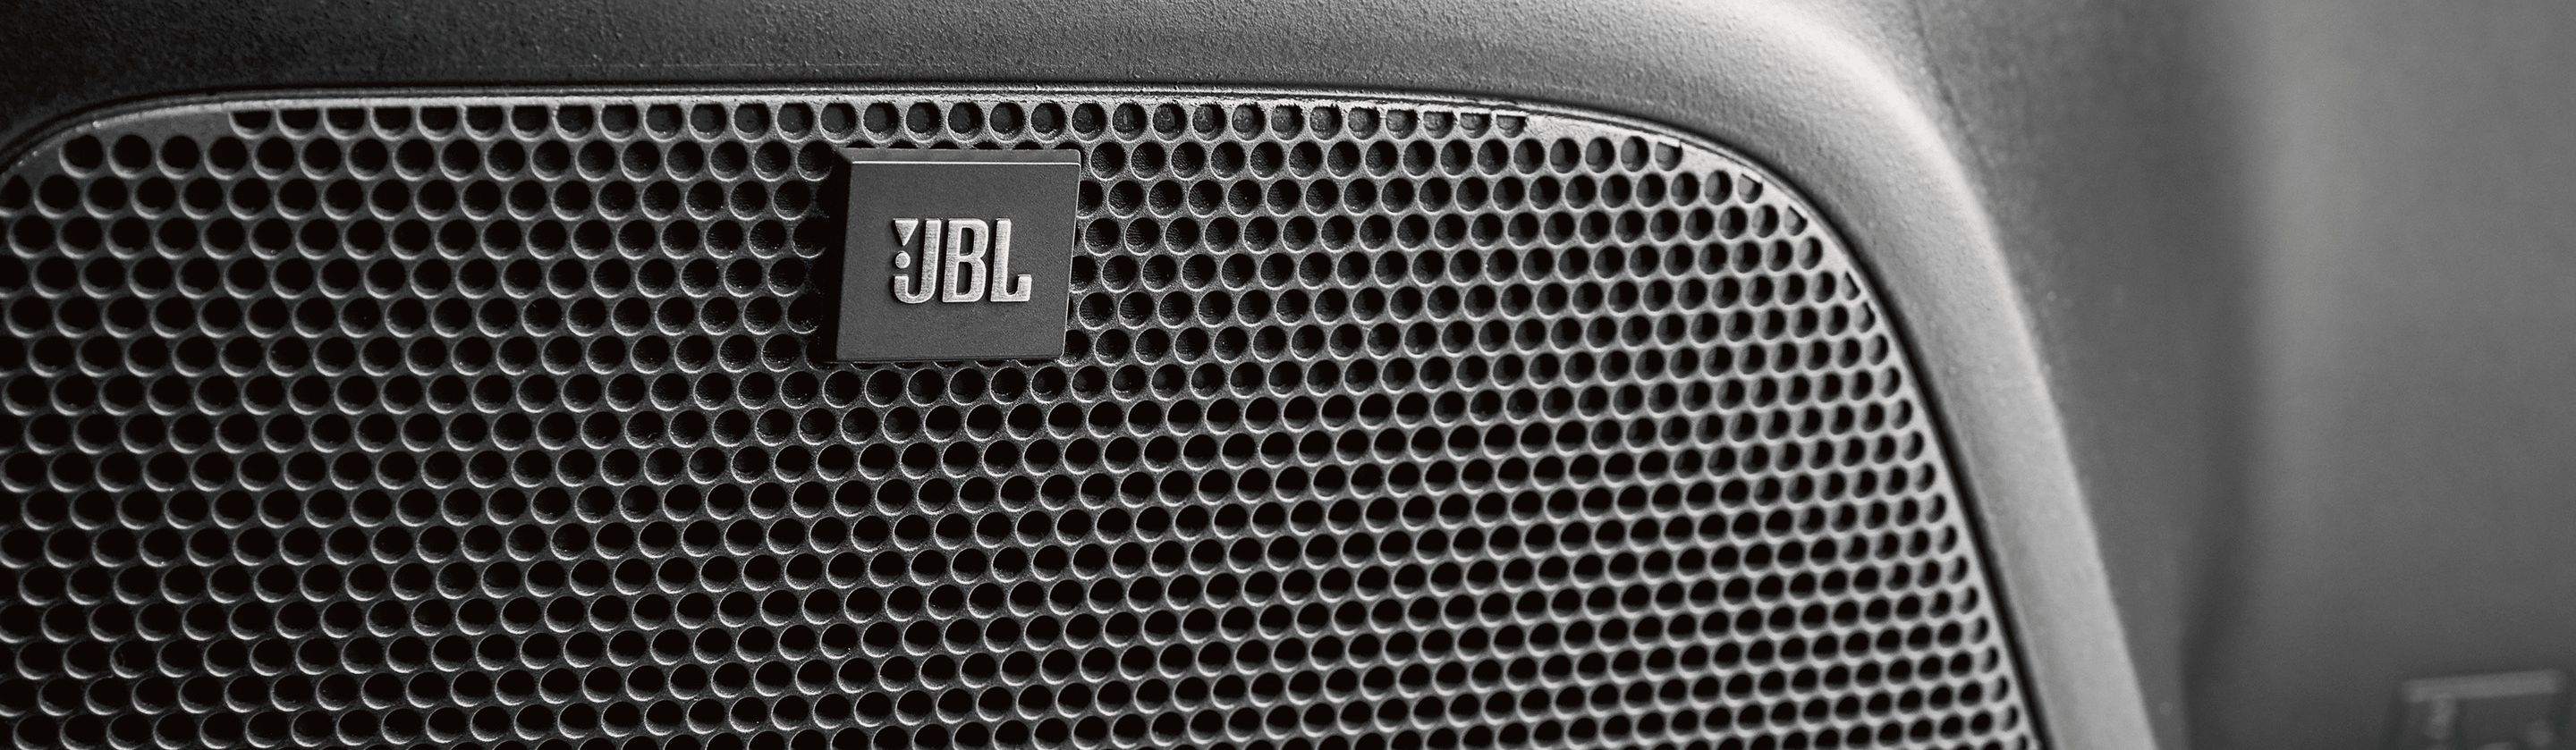 Upgrade to the Great JBL Speakers!